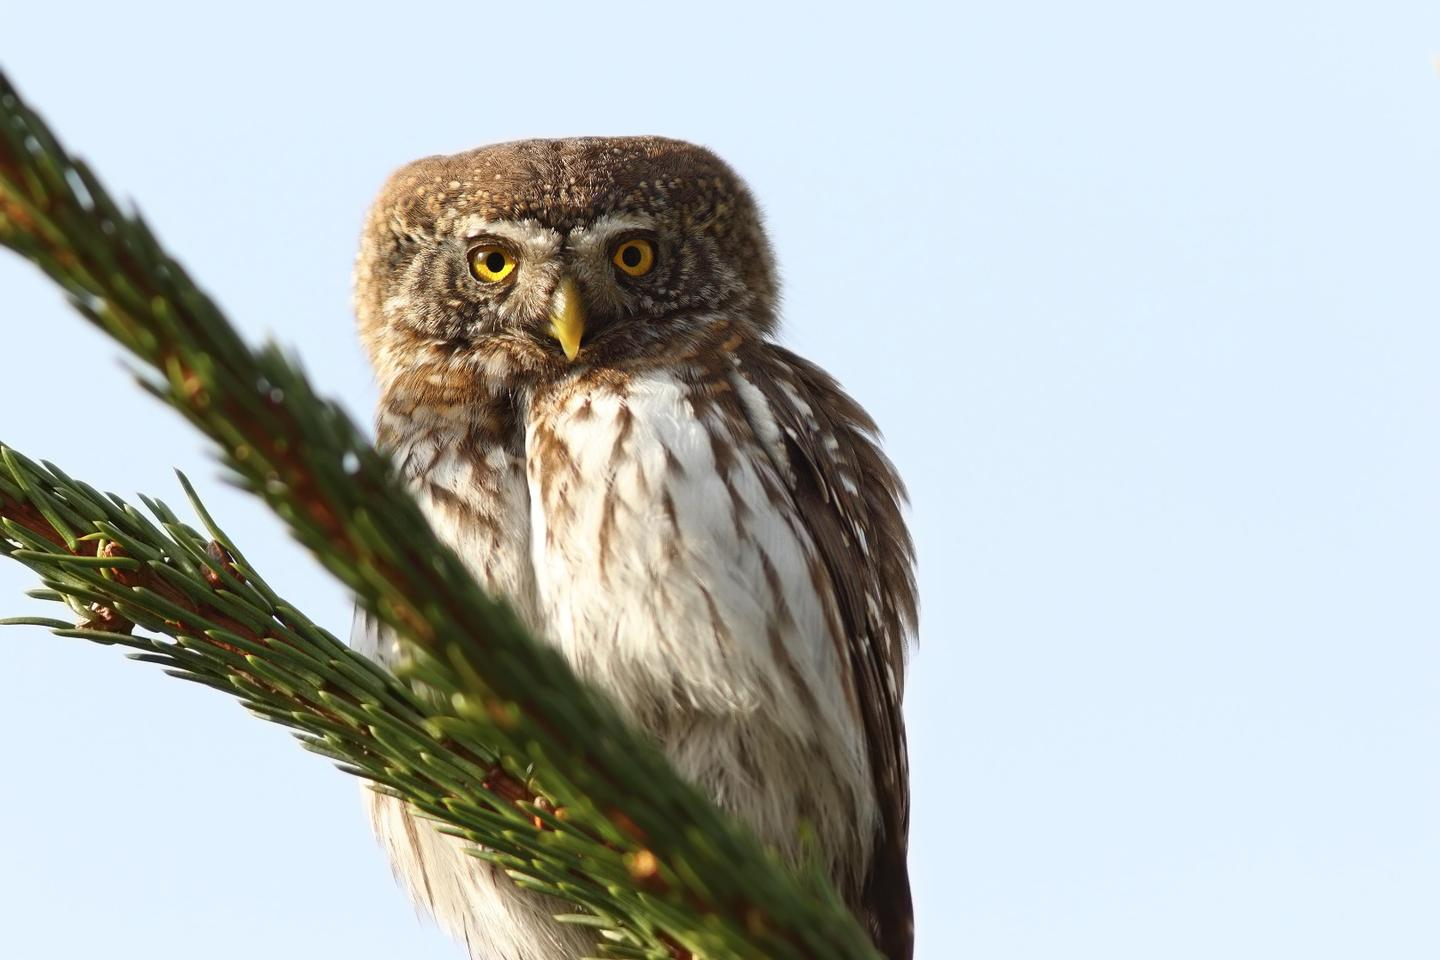 The researchers introduced a model of a pygmy owl, like the live one seen here,to see how the prey species responded